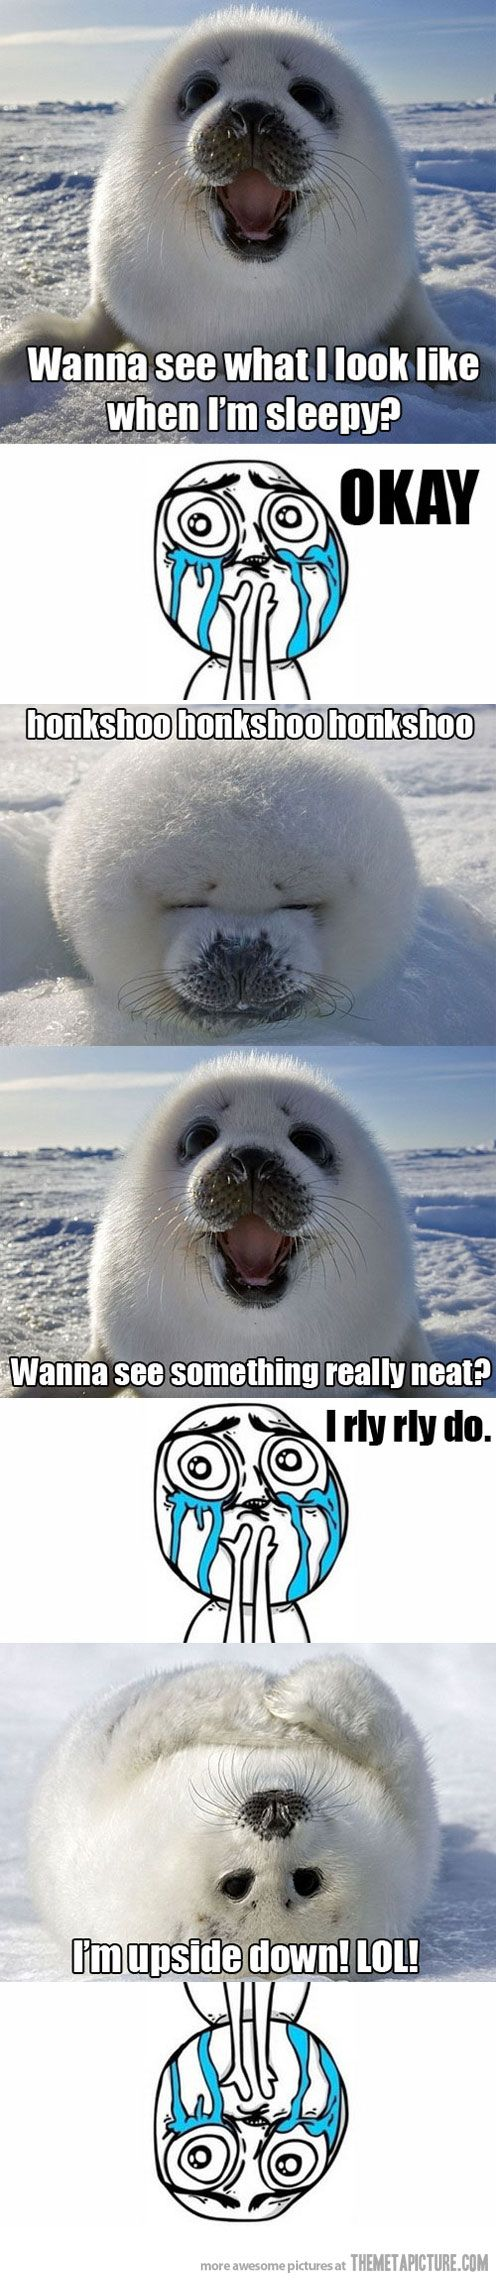 Baby seals are so adorable.